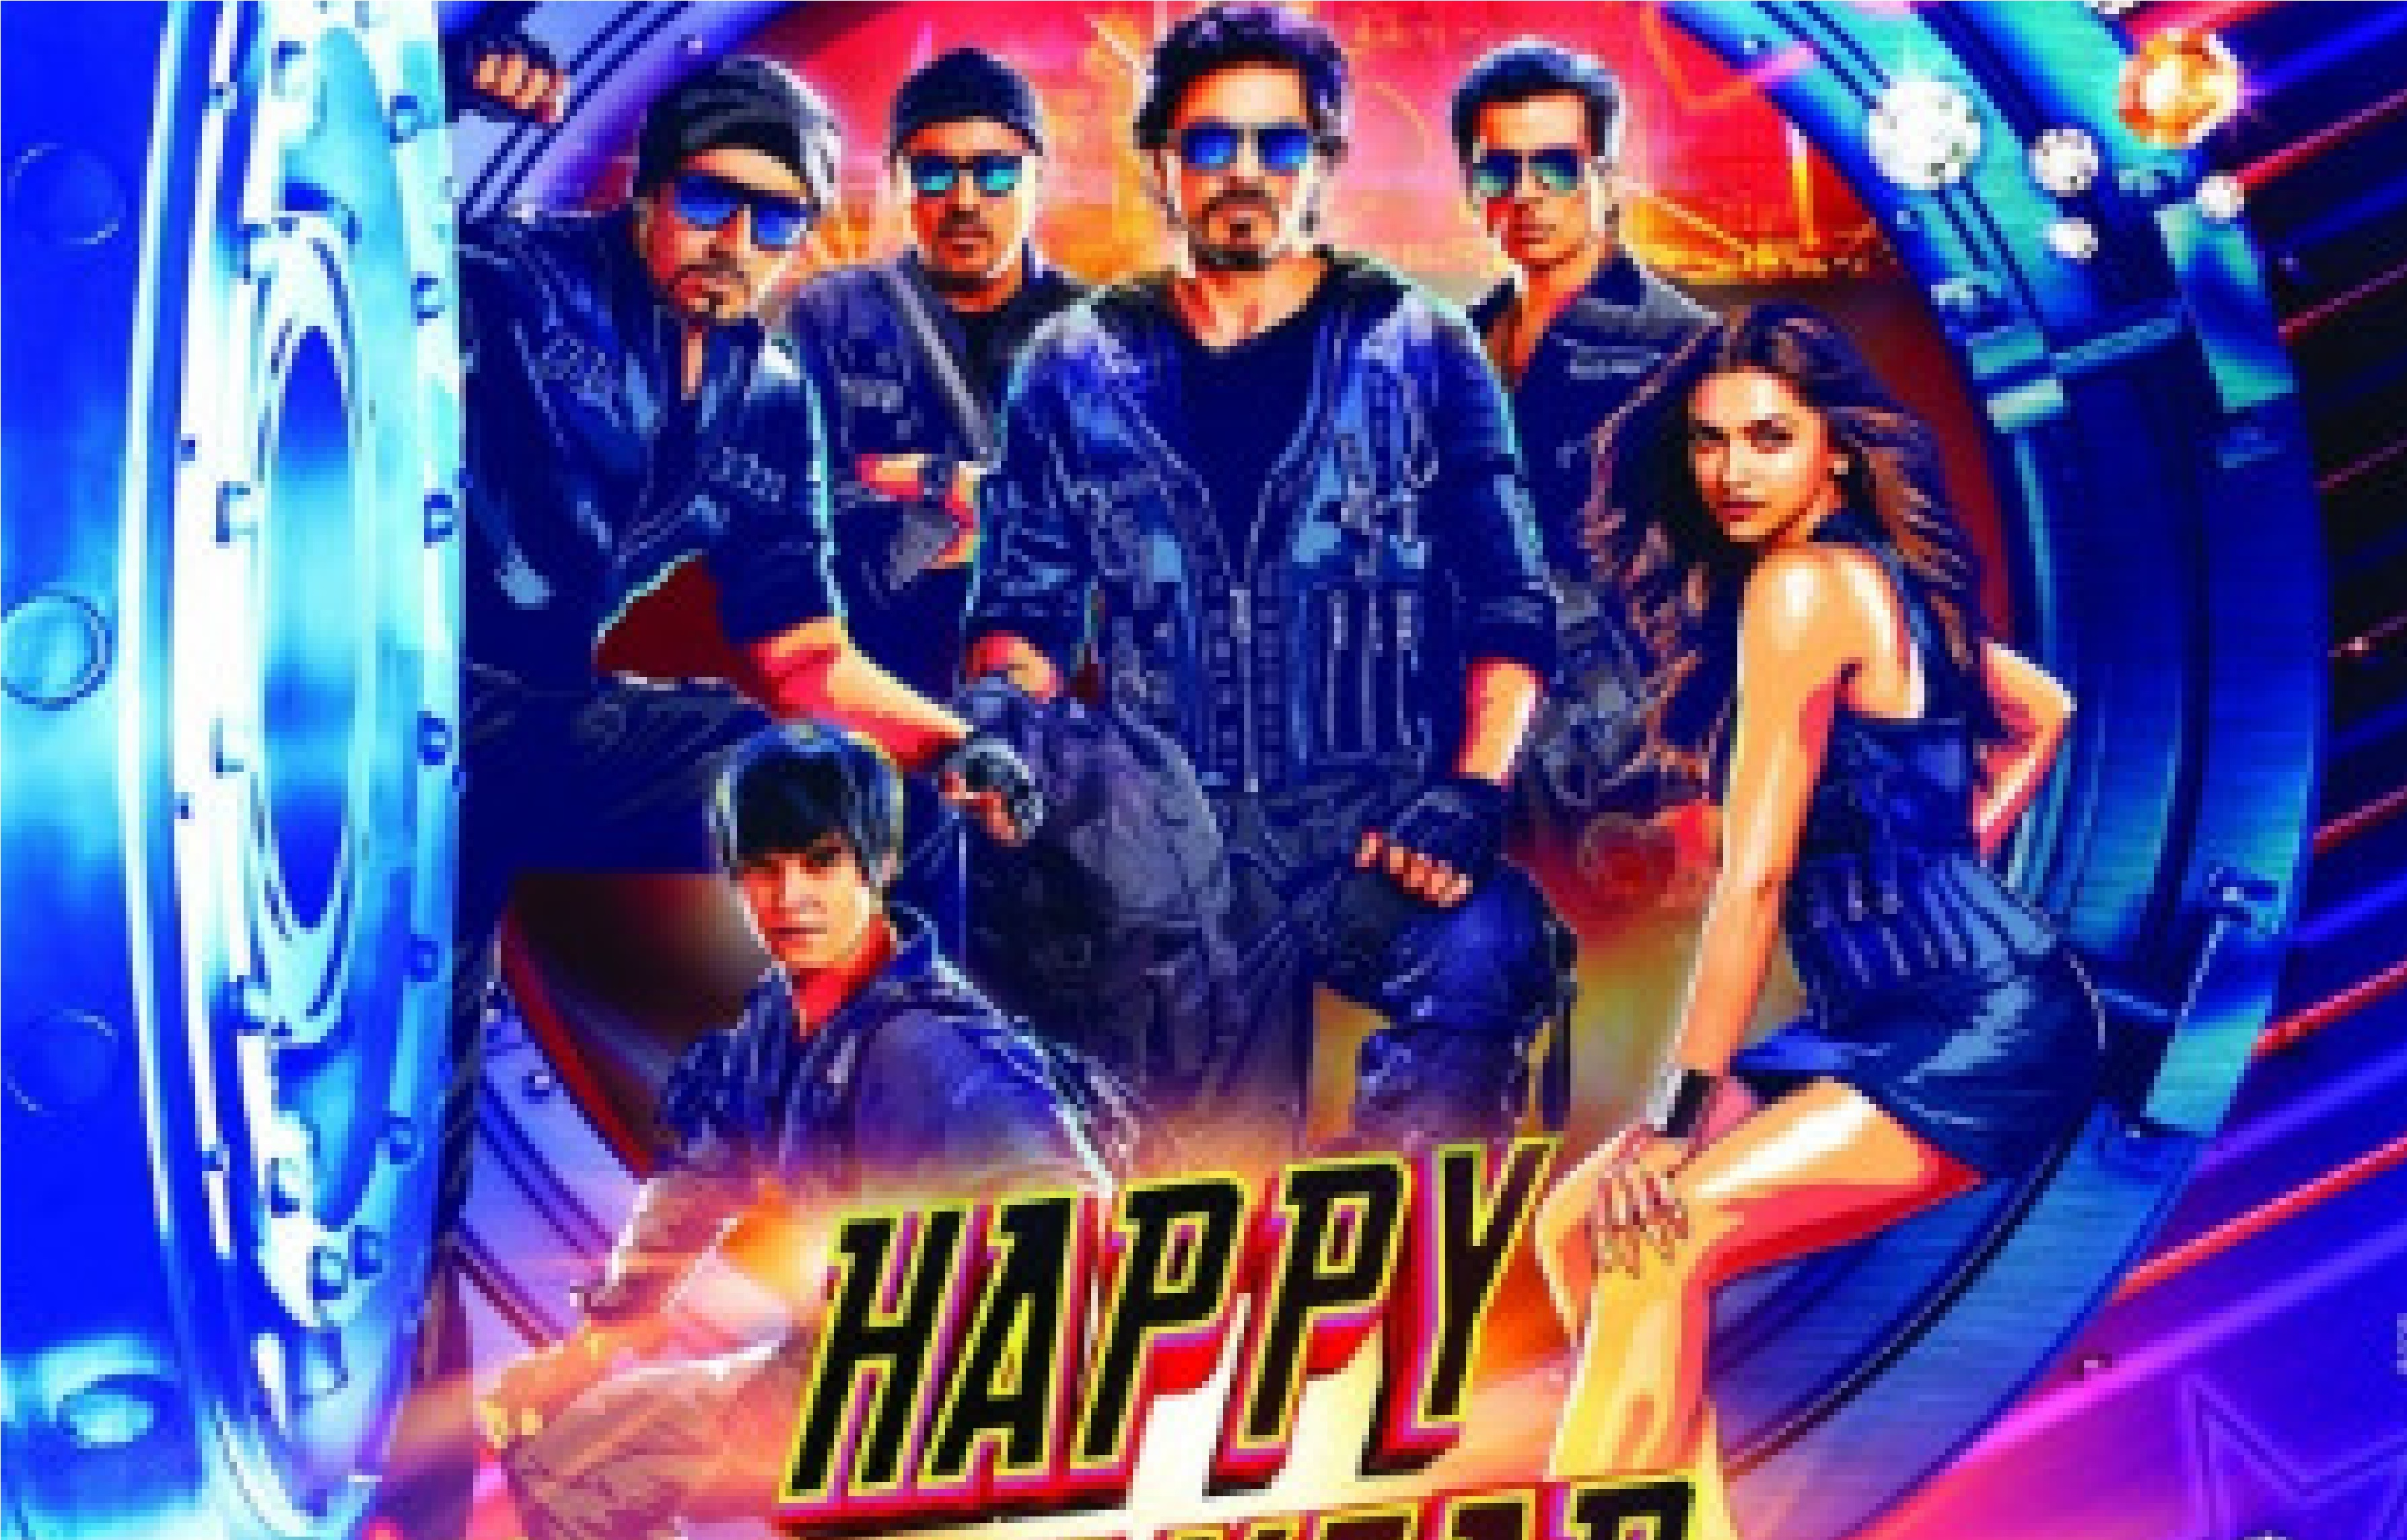 Movie Poster 2019: First Look At Shahrukh Khan And Deepika In New Film Happy